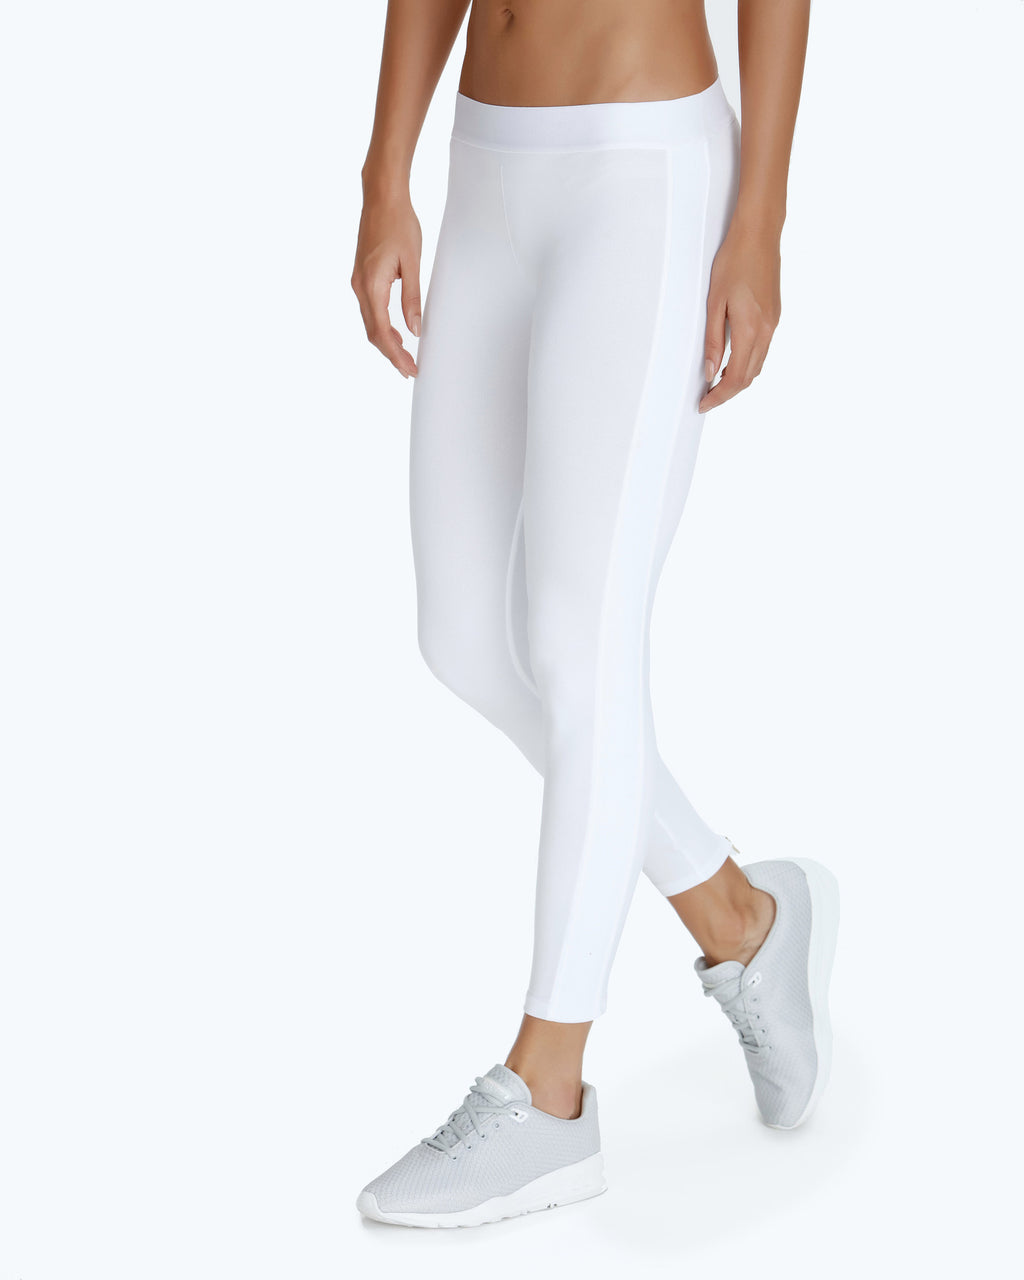 Alexis Fashion Legging - White - Vaara